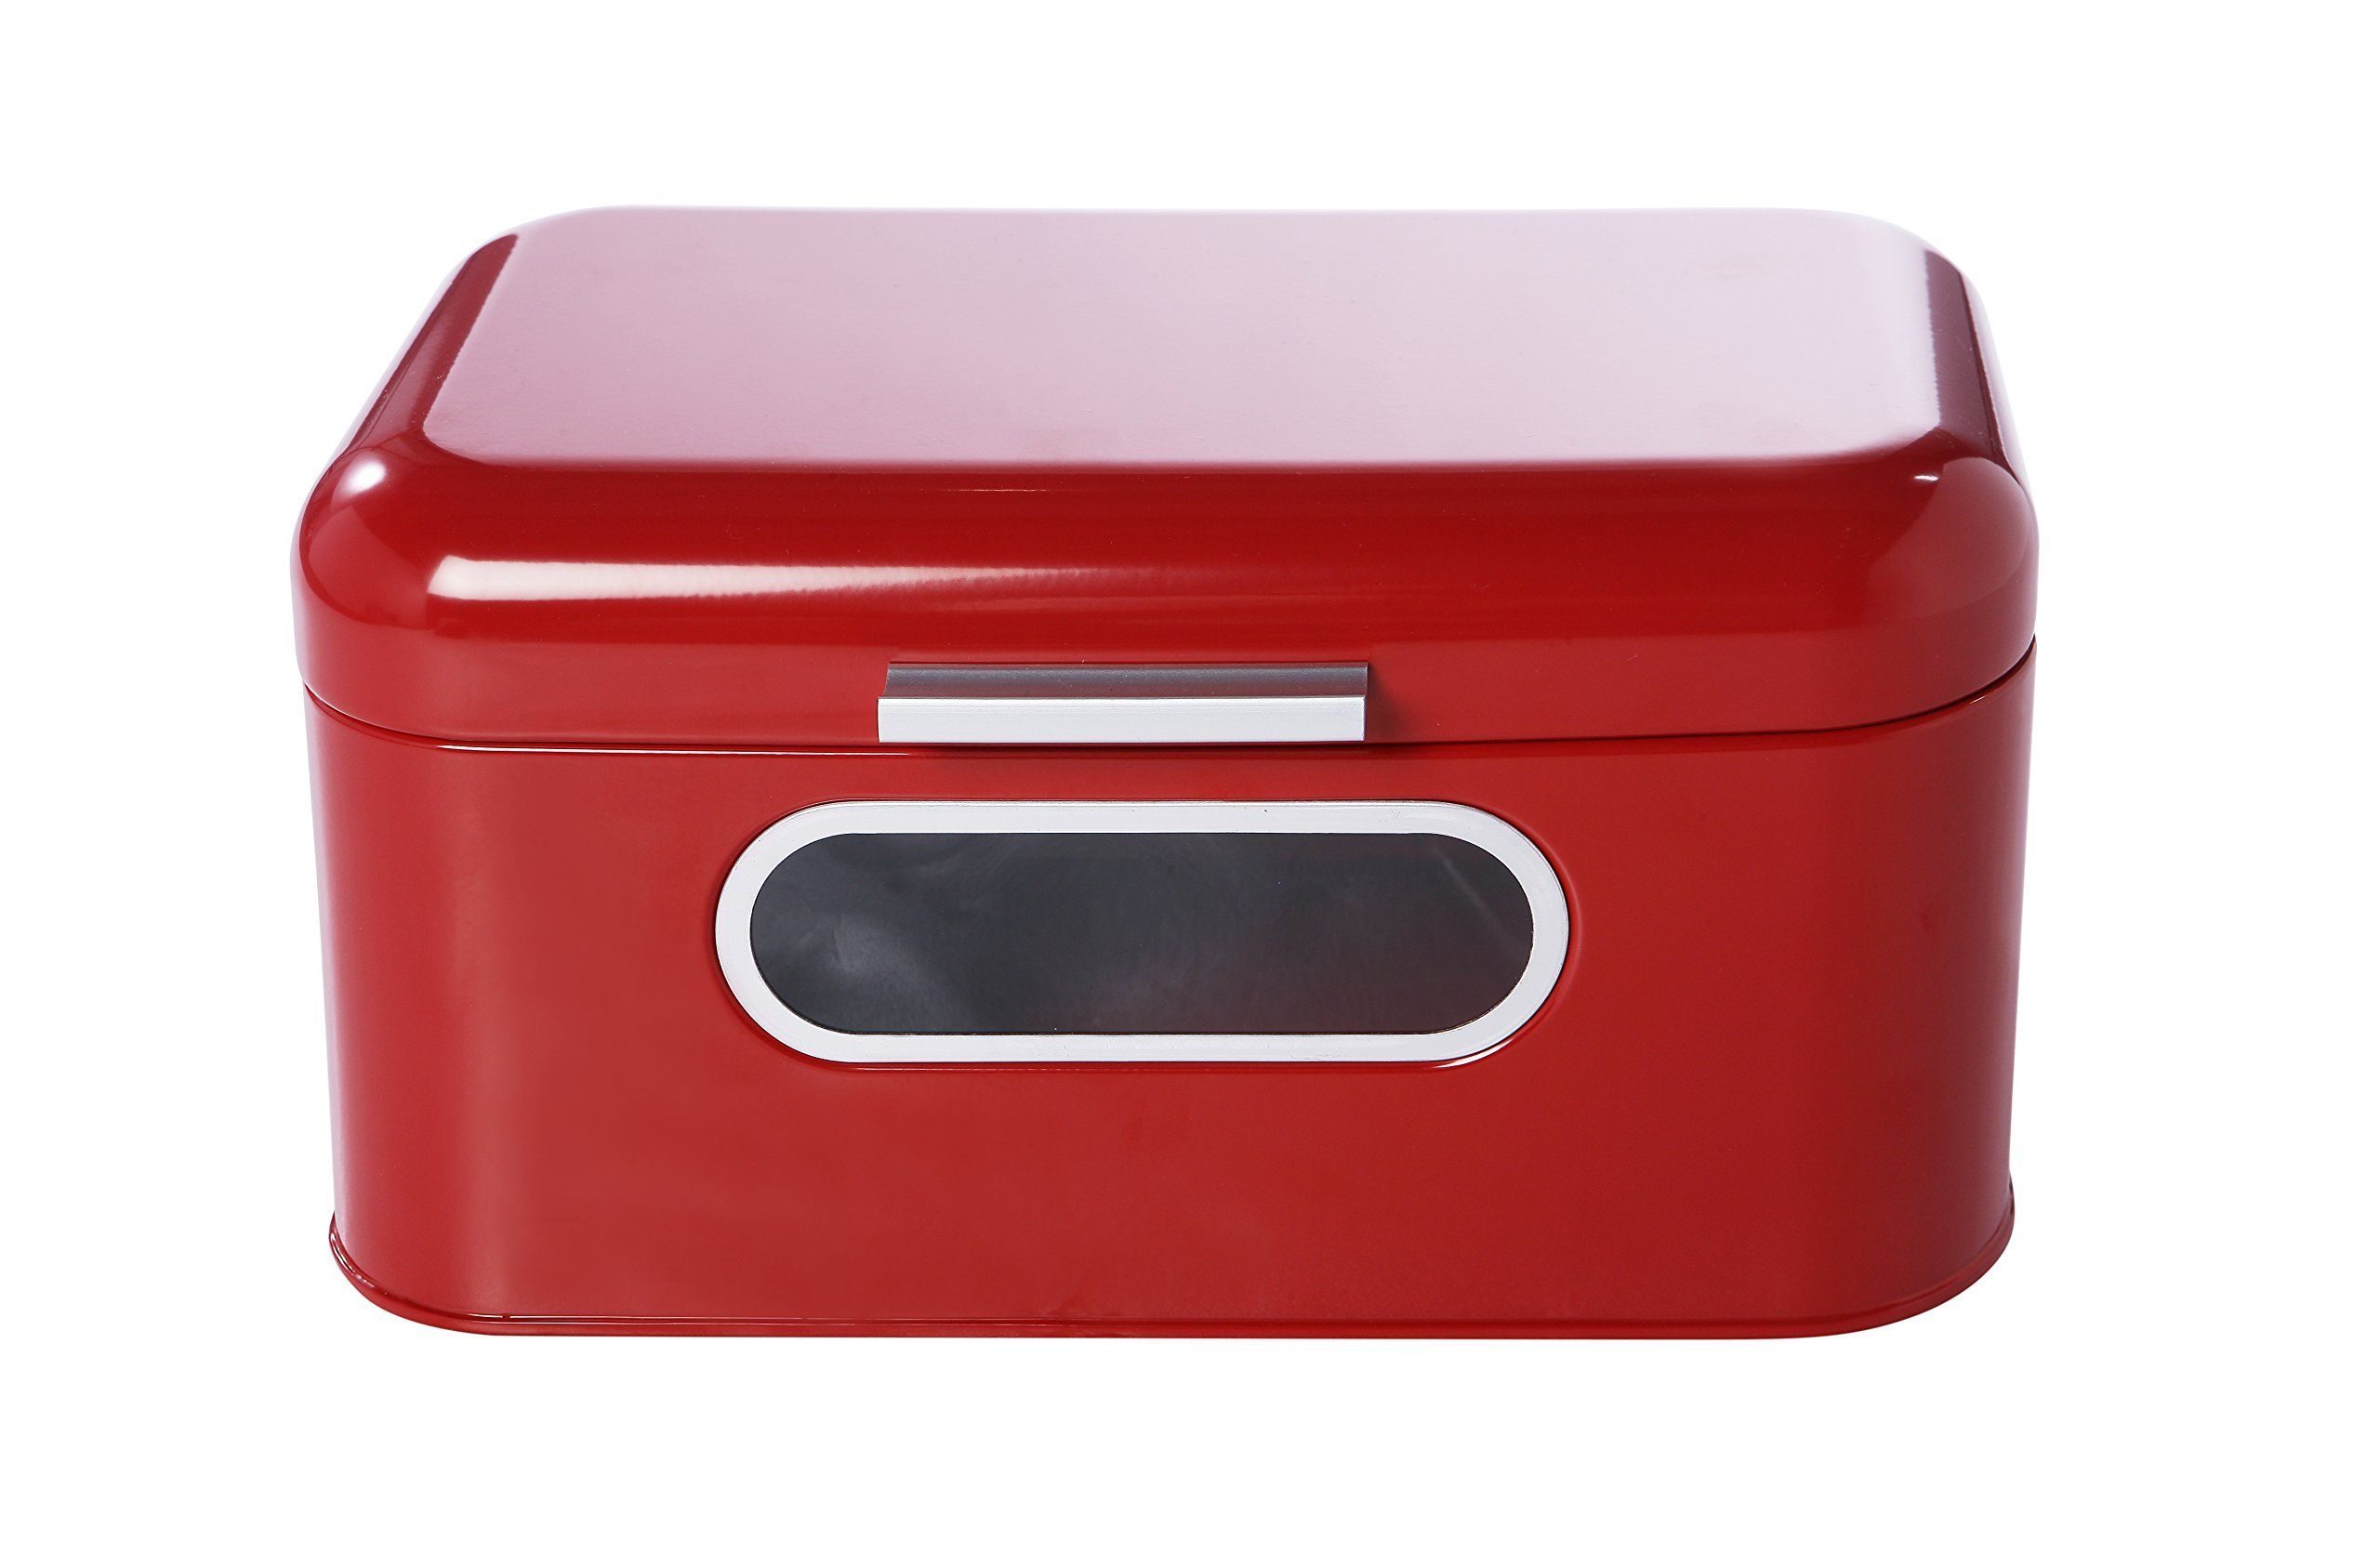 12 X 8 X 6 Inches Retro//Vintage Inspired Design and More Metal Bread Bin Storage Container for Loaves Pastries Bread Box for Kitchen Counter